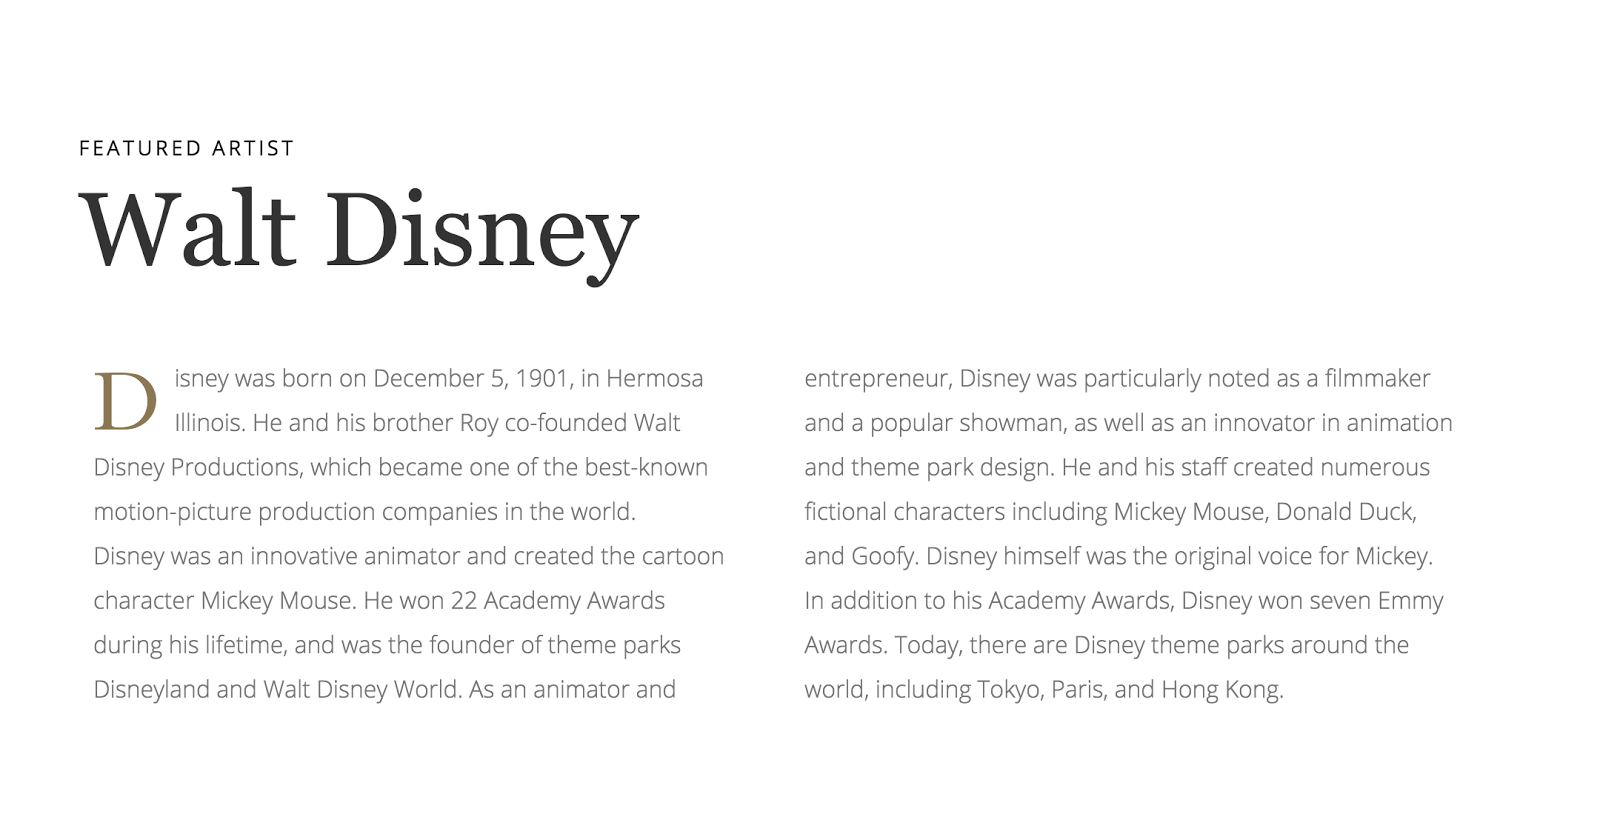 The History of Imagination site combines Open Sans and Georgia in fresh ways